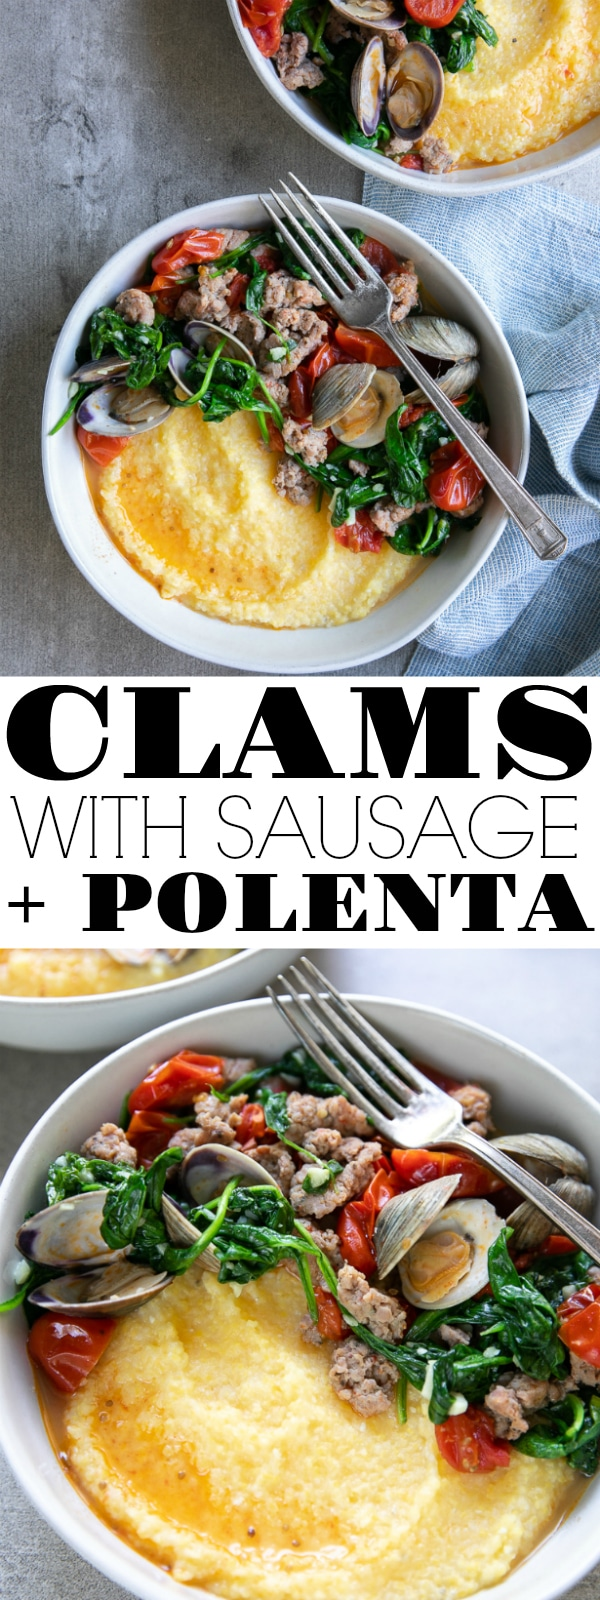 Drunken Clams with Italian Sausage and Polenta is an easy and delicious anytime dish made with sauteéd spinach, burst cherry tomatoes, littleneck clams, and sweet Italian sausage served over creamy polenta. Ready in just 30 minutes. #polenta #italianfood #dinner #clams #drunkenclams #cookingwithwine #spinach #cherrytomatoes #italiansausage #grits | For this recipe and more visit, https://theforkedspoon.com